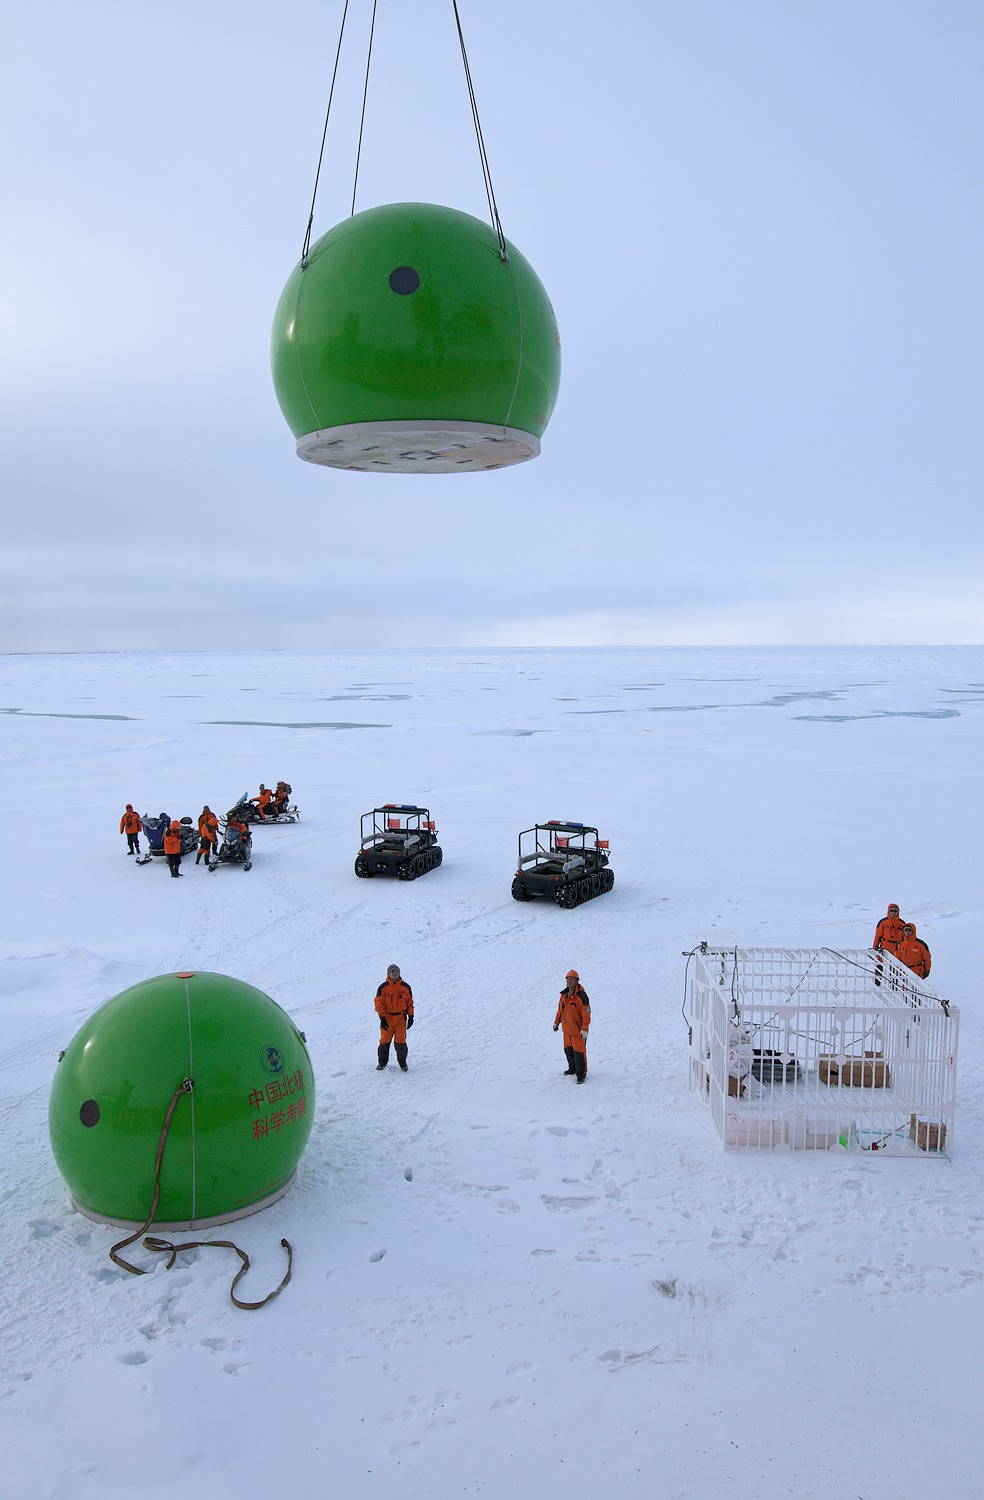 Chinese scientists deploy a camp onto the sea ice during an expedition to the Arctic. The logistics of doing research in the far north reminds scholars and students of the connections among knowledge, environment, and society. They help us frame the question, how do scientists move through the world? Image by Timo Palo, 2010. Wikimedia Commons.